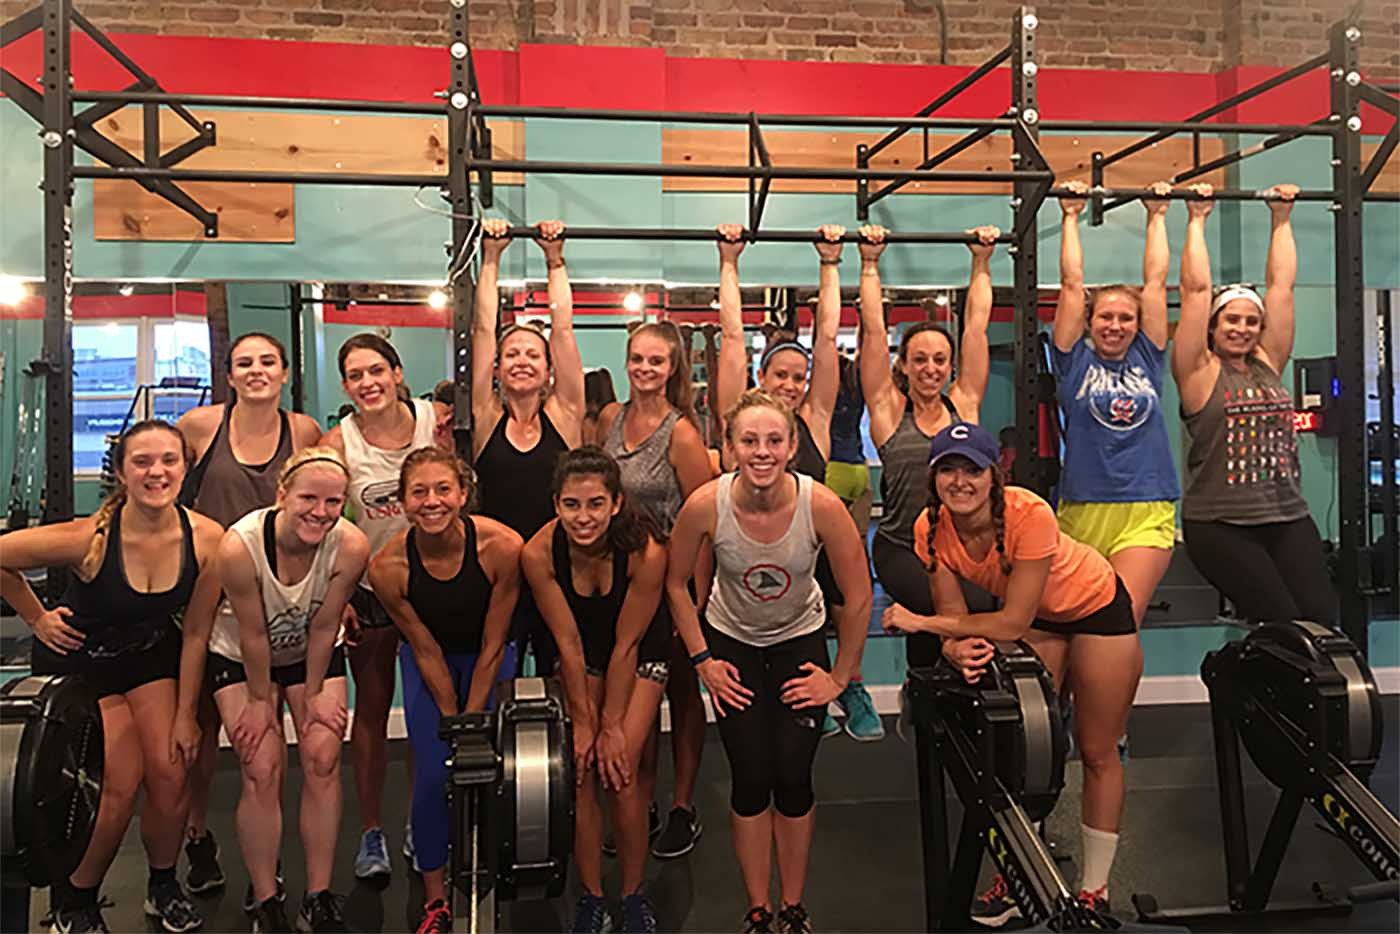 asweatlife_a-workout-with-depaul-universitys-crew-team